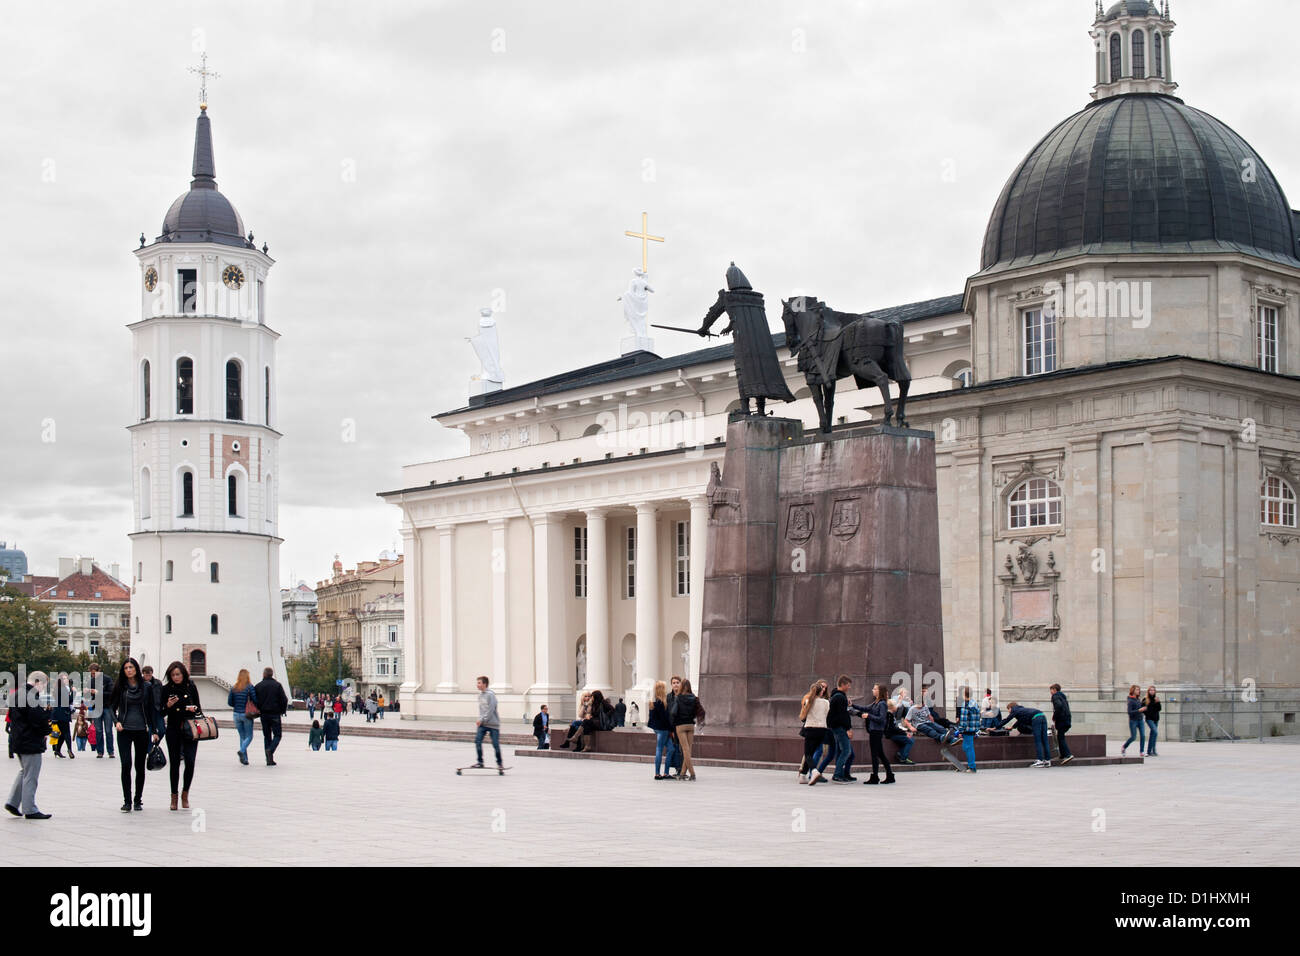 Cathedral Square with Vilnius Cathedral and its bell tower in Vilnius, the capital of Lithuania. - Stock Image